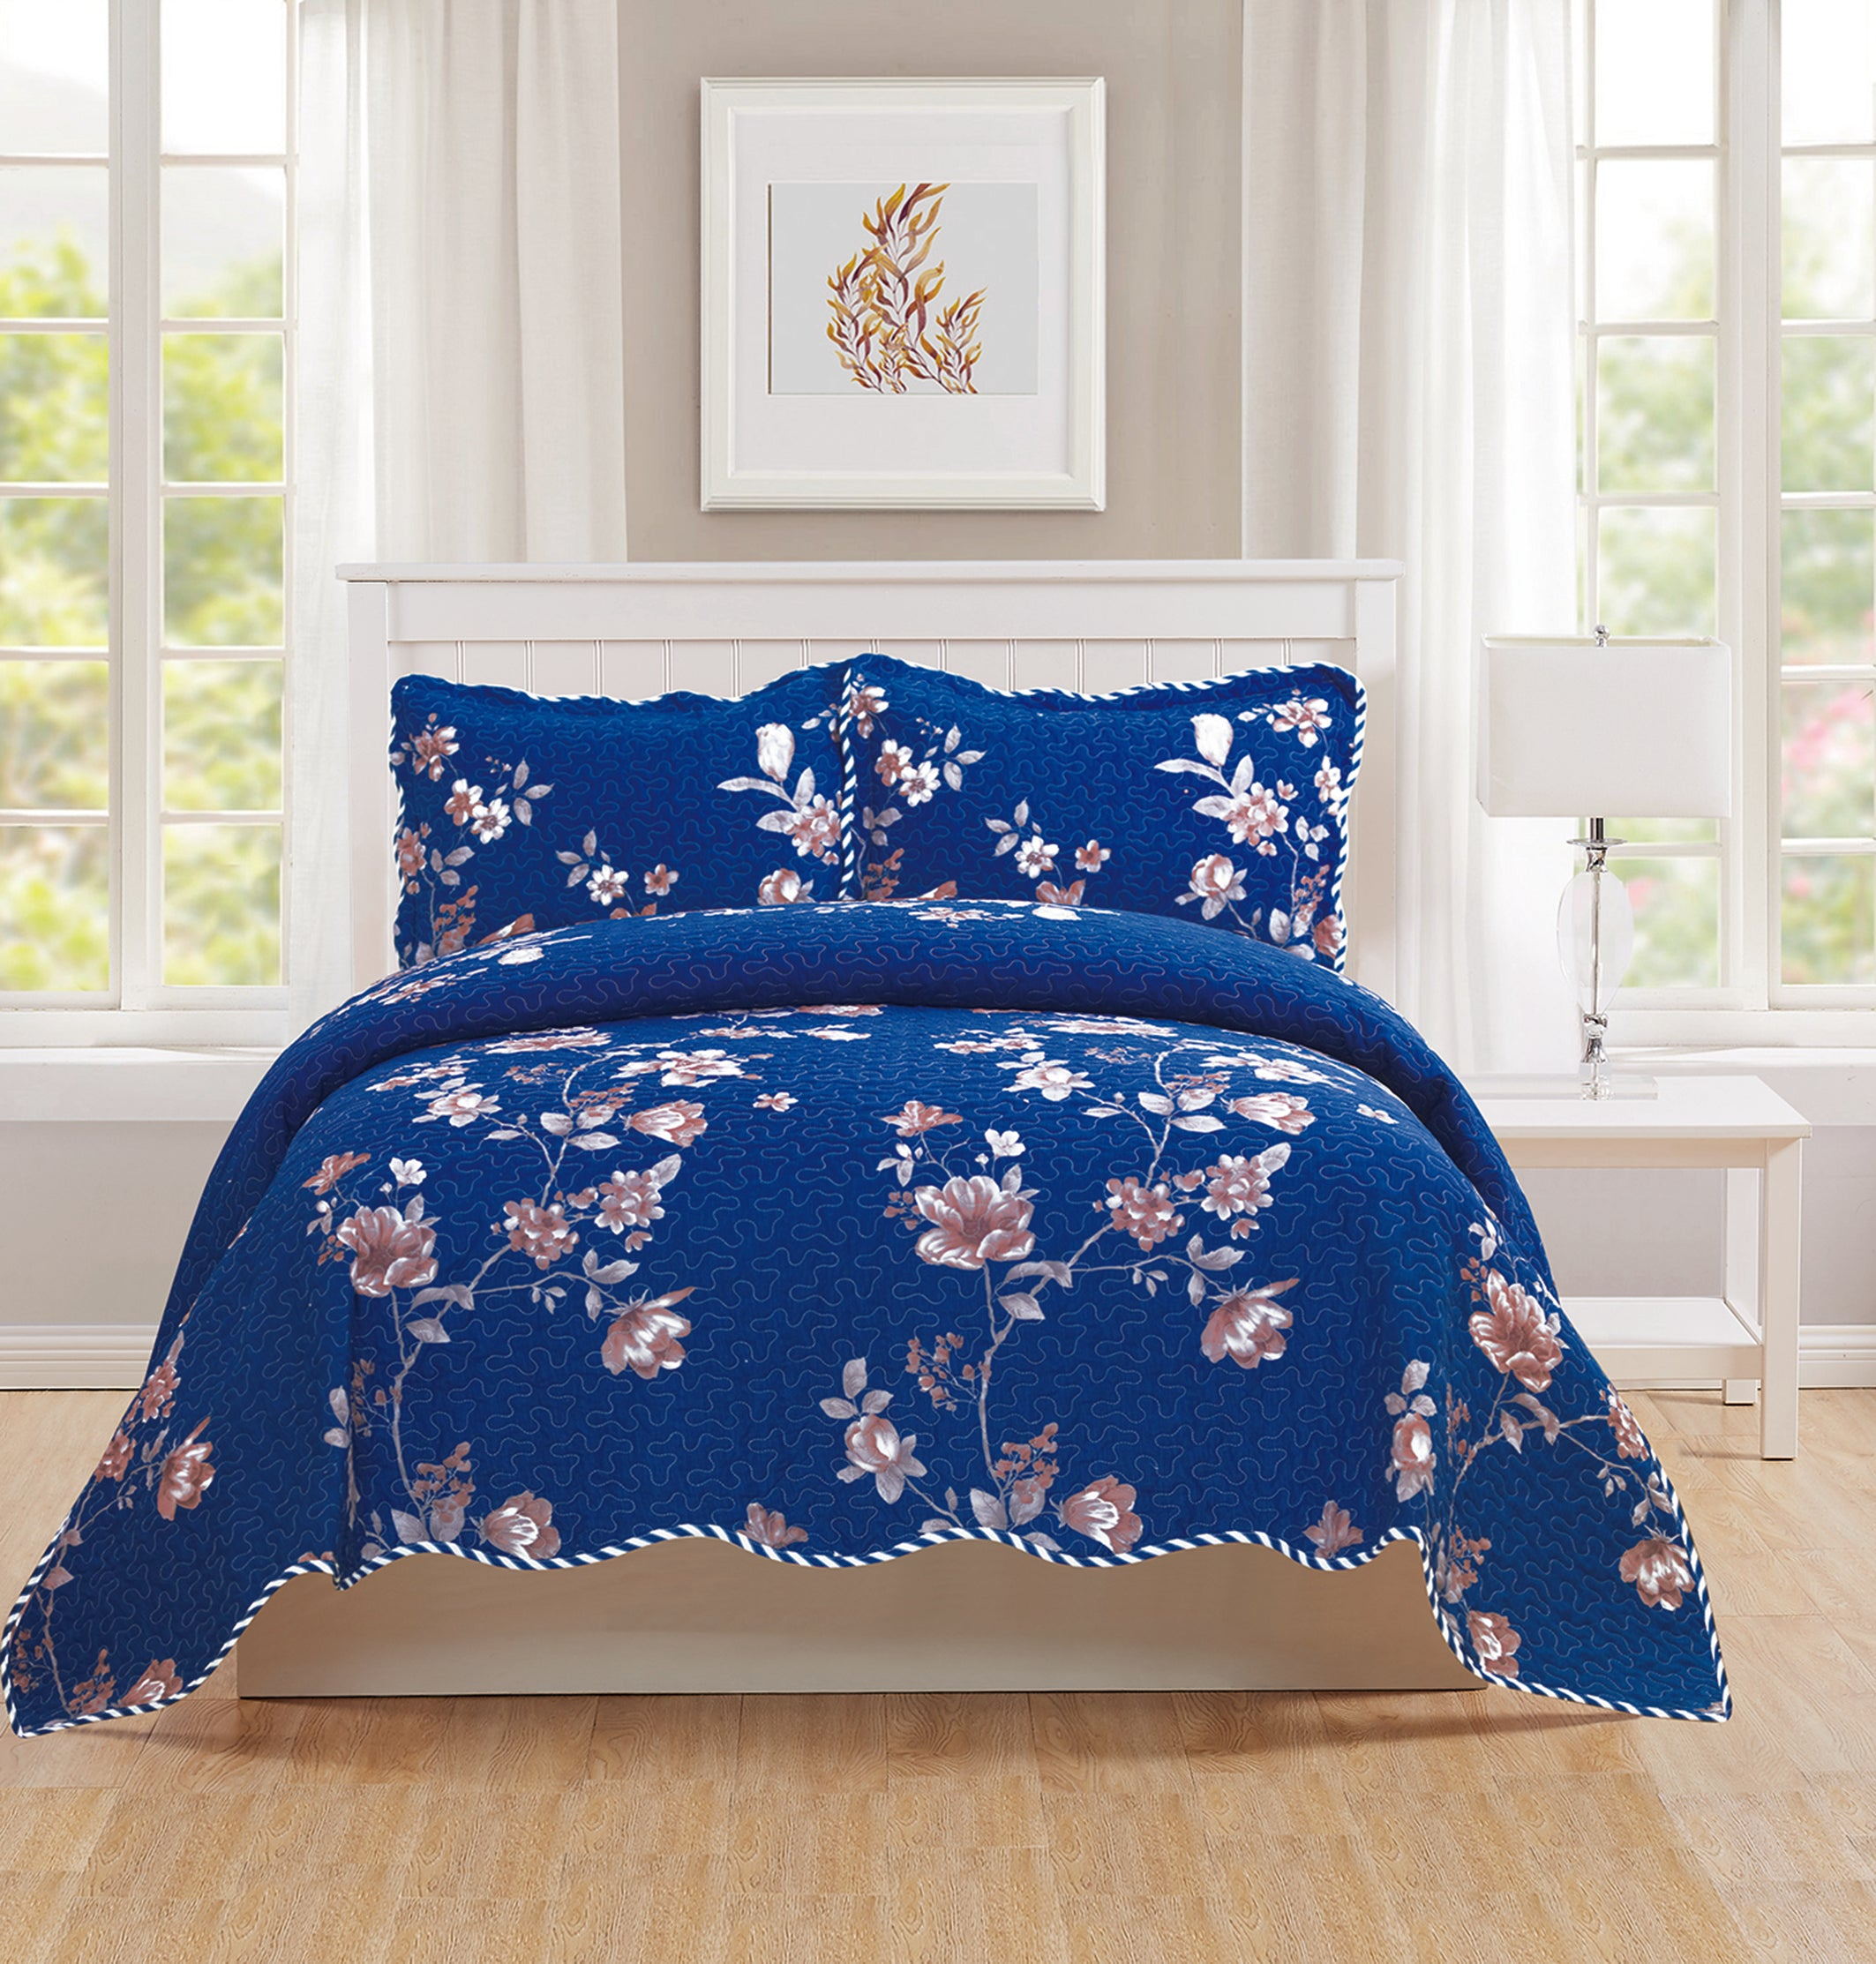 Monica - 3 Piece Quilt bedspread Set queen and king size - Navy - Glory Home Design